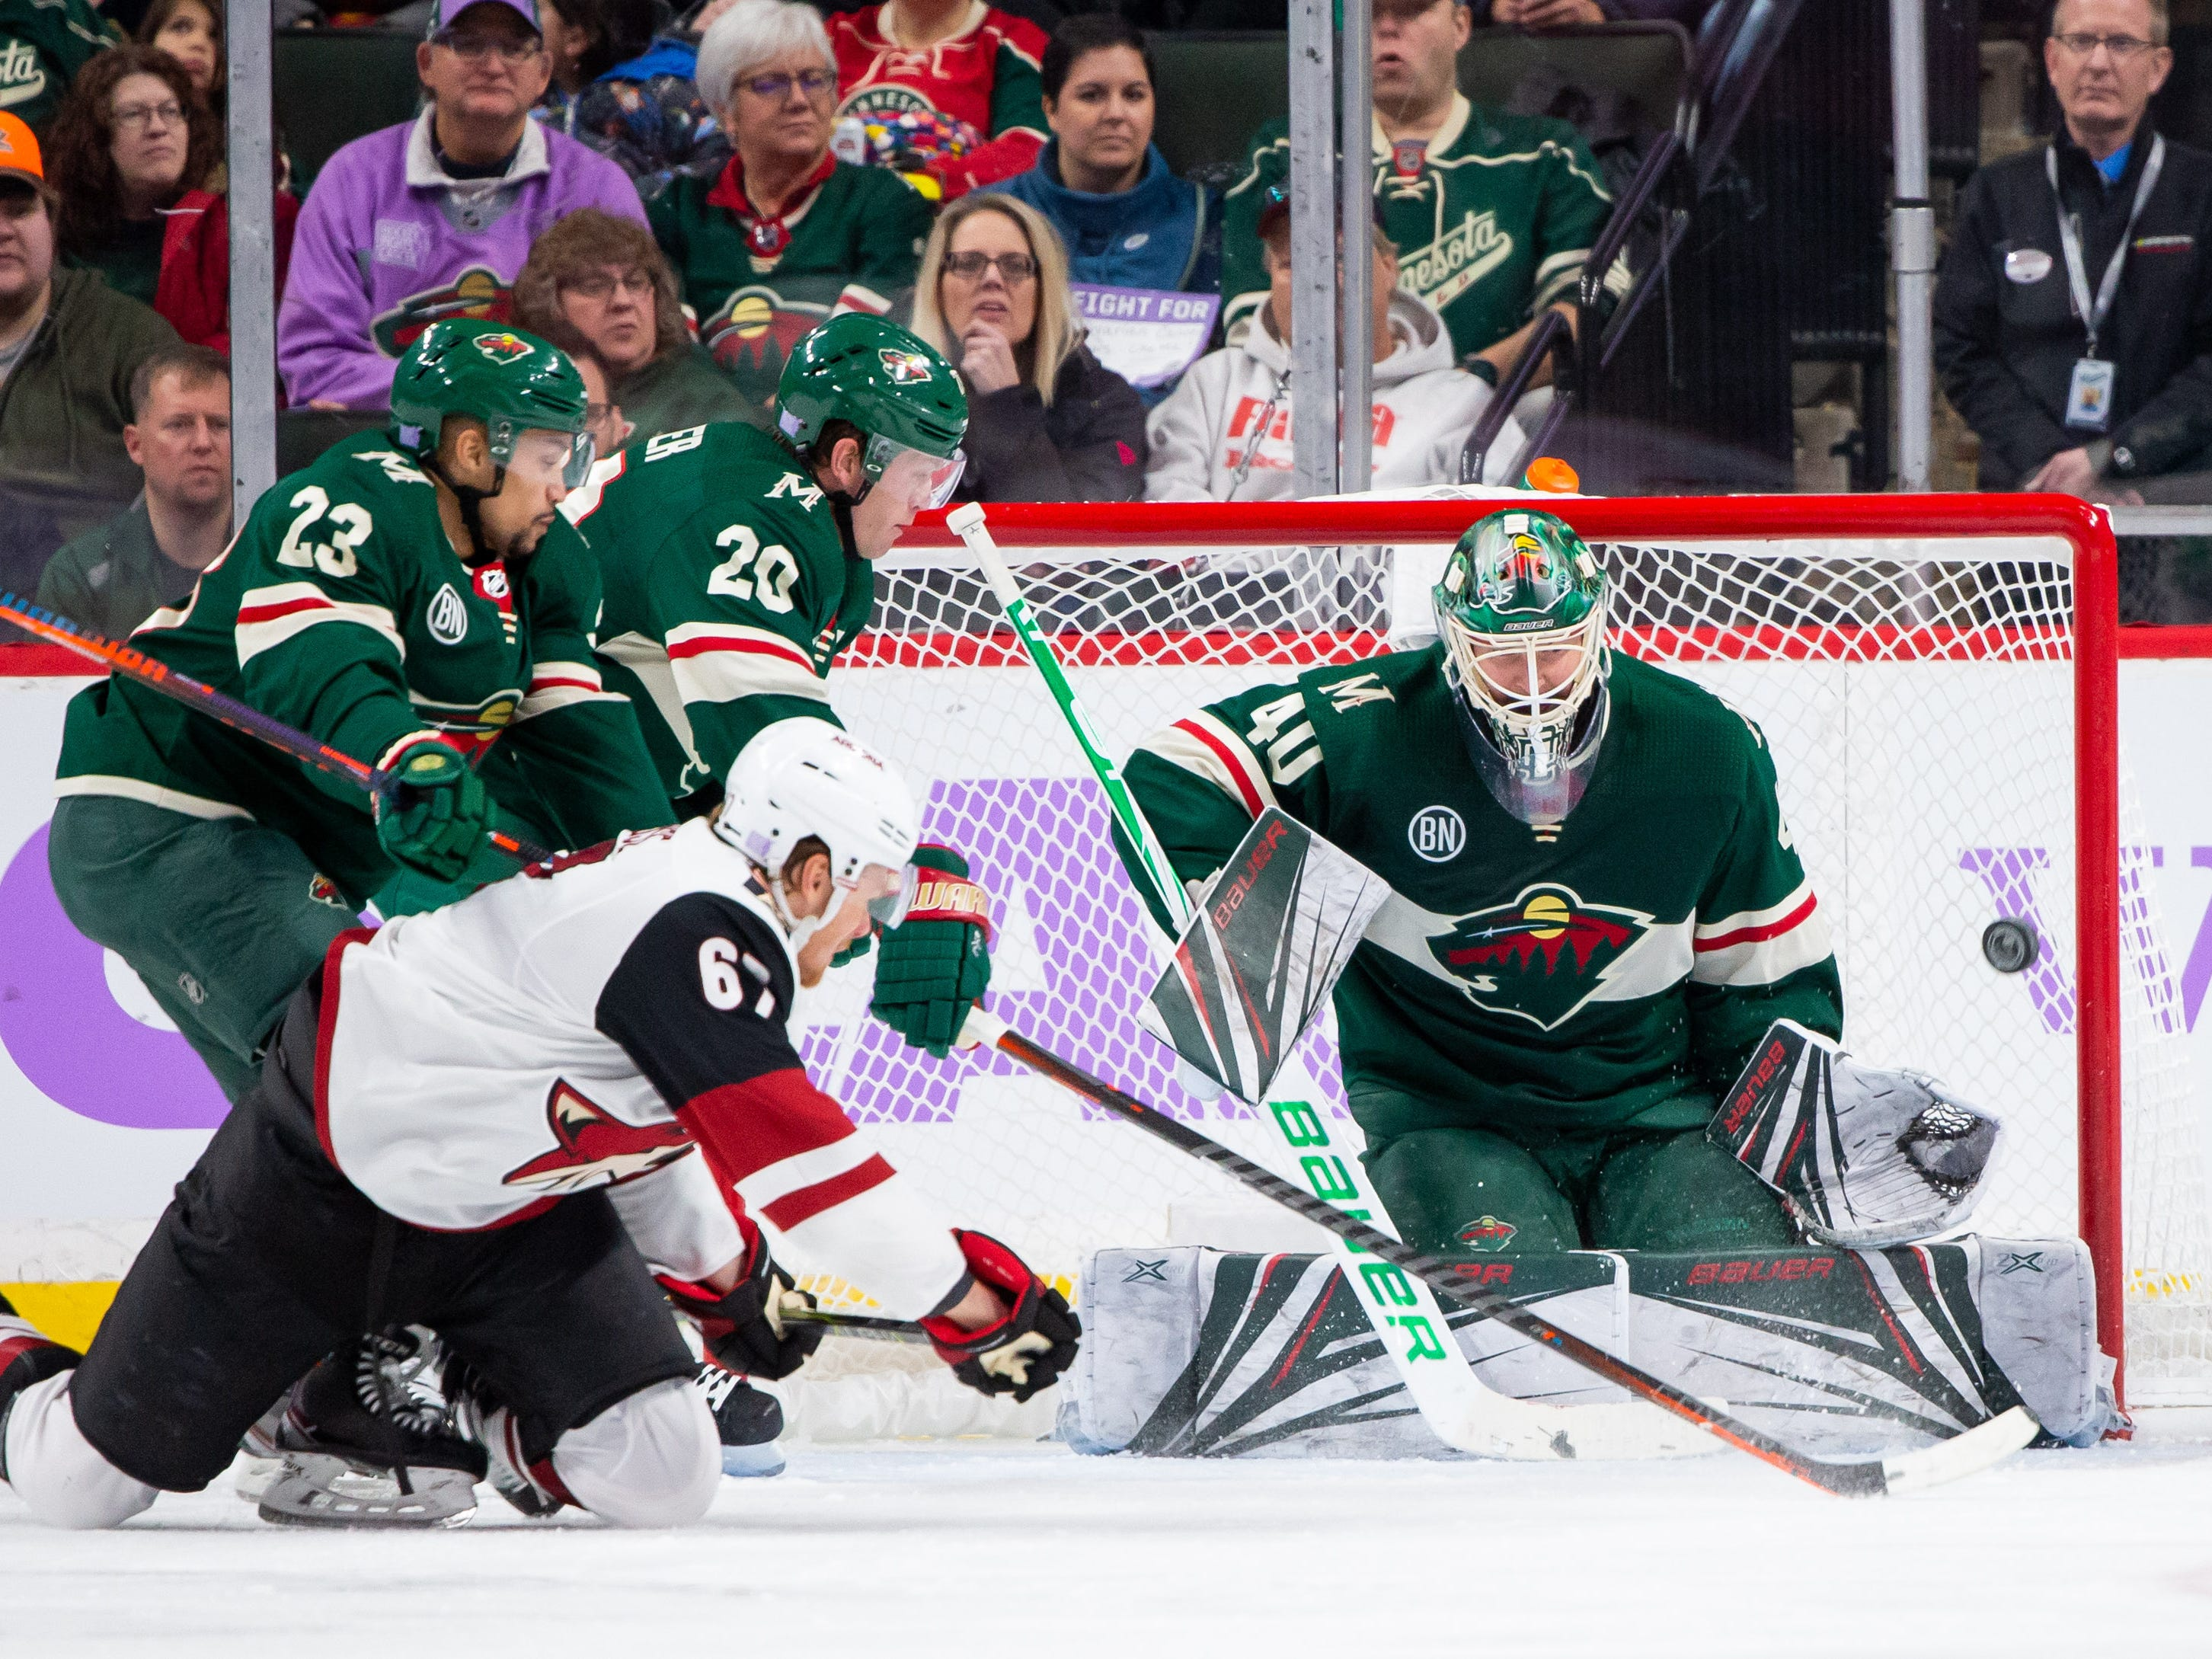 Nov 27, 2018; Saint Paul, MN, USA; Phoenix Coyotes forward Lawson Crouse (67) shoots in the second period against Minnesota Wild goalie Devan Dubnyk (40) at Xcel Energy Center. Mandatory Credit: Brad Rempel-USA TODAY Sports